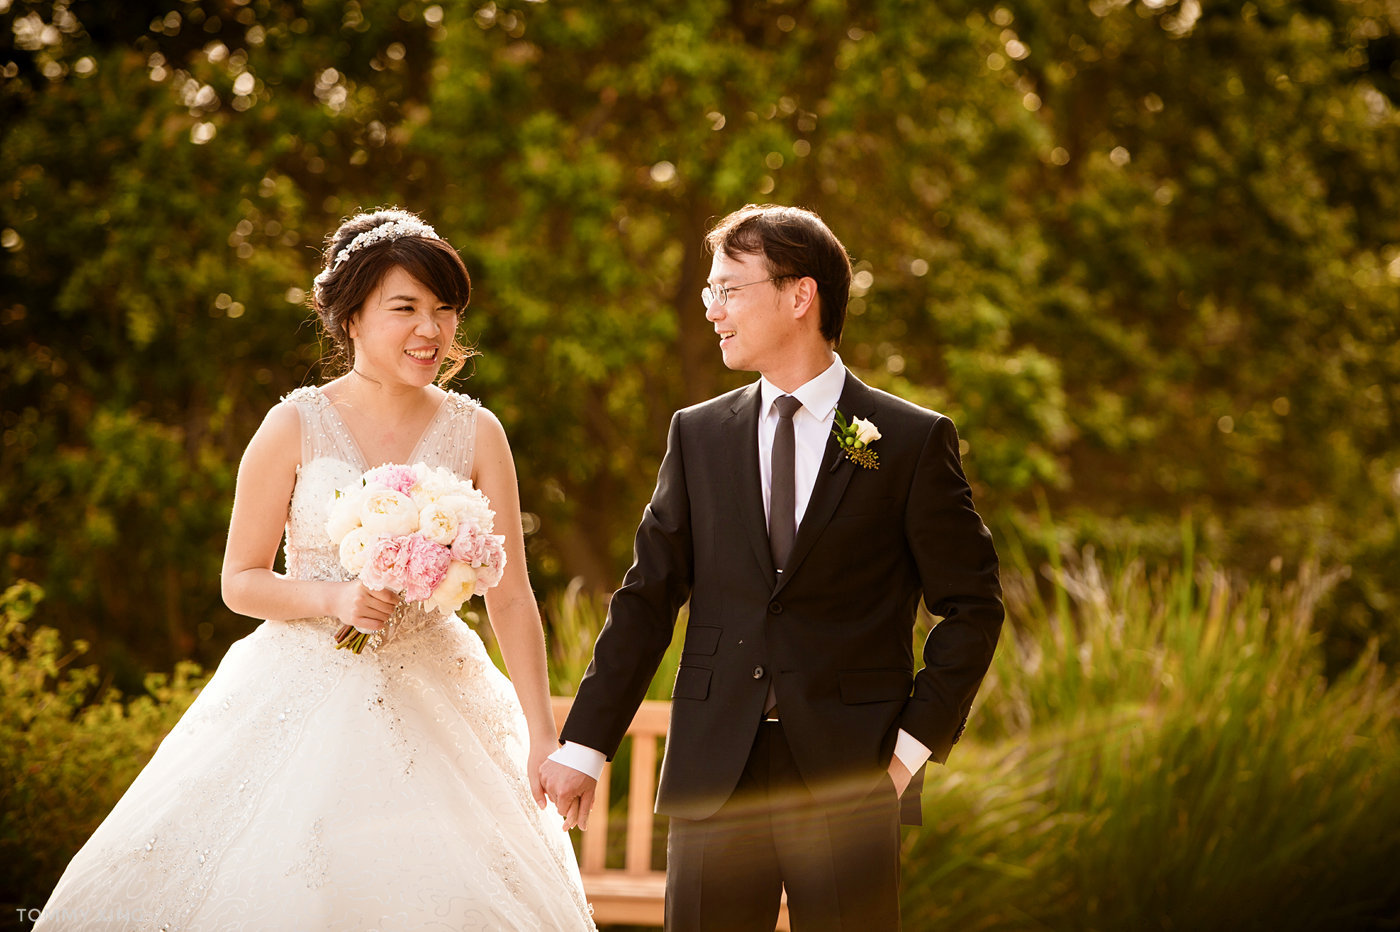 Qinglu Meng & Daozheng Chen Wedding Slideshow-68-E.JPG